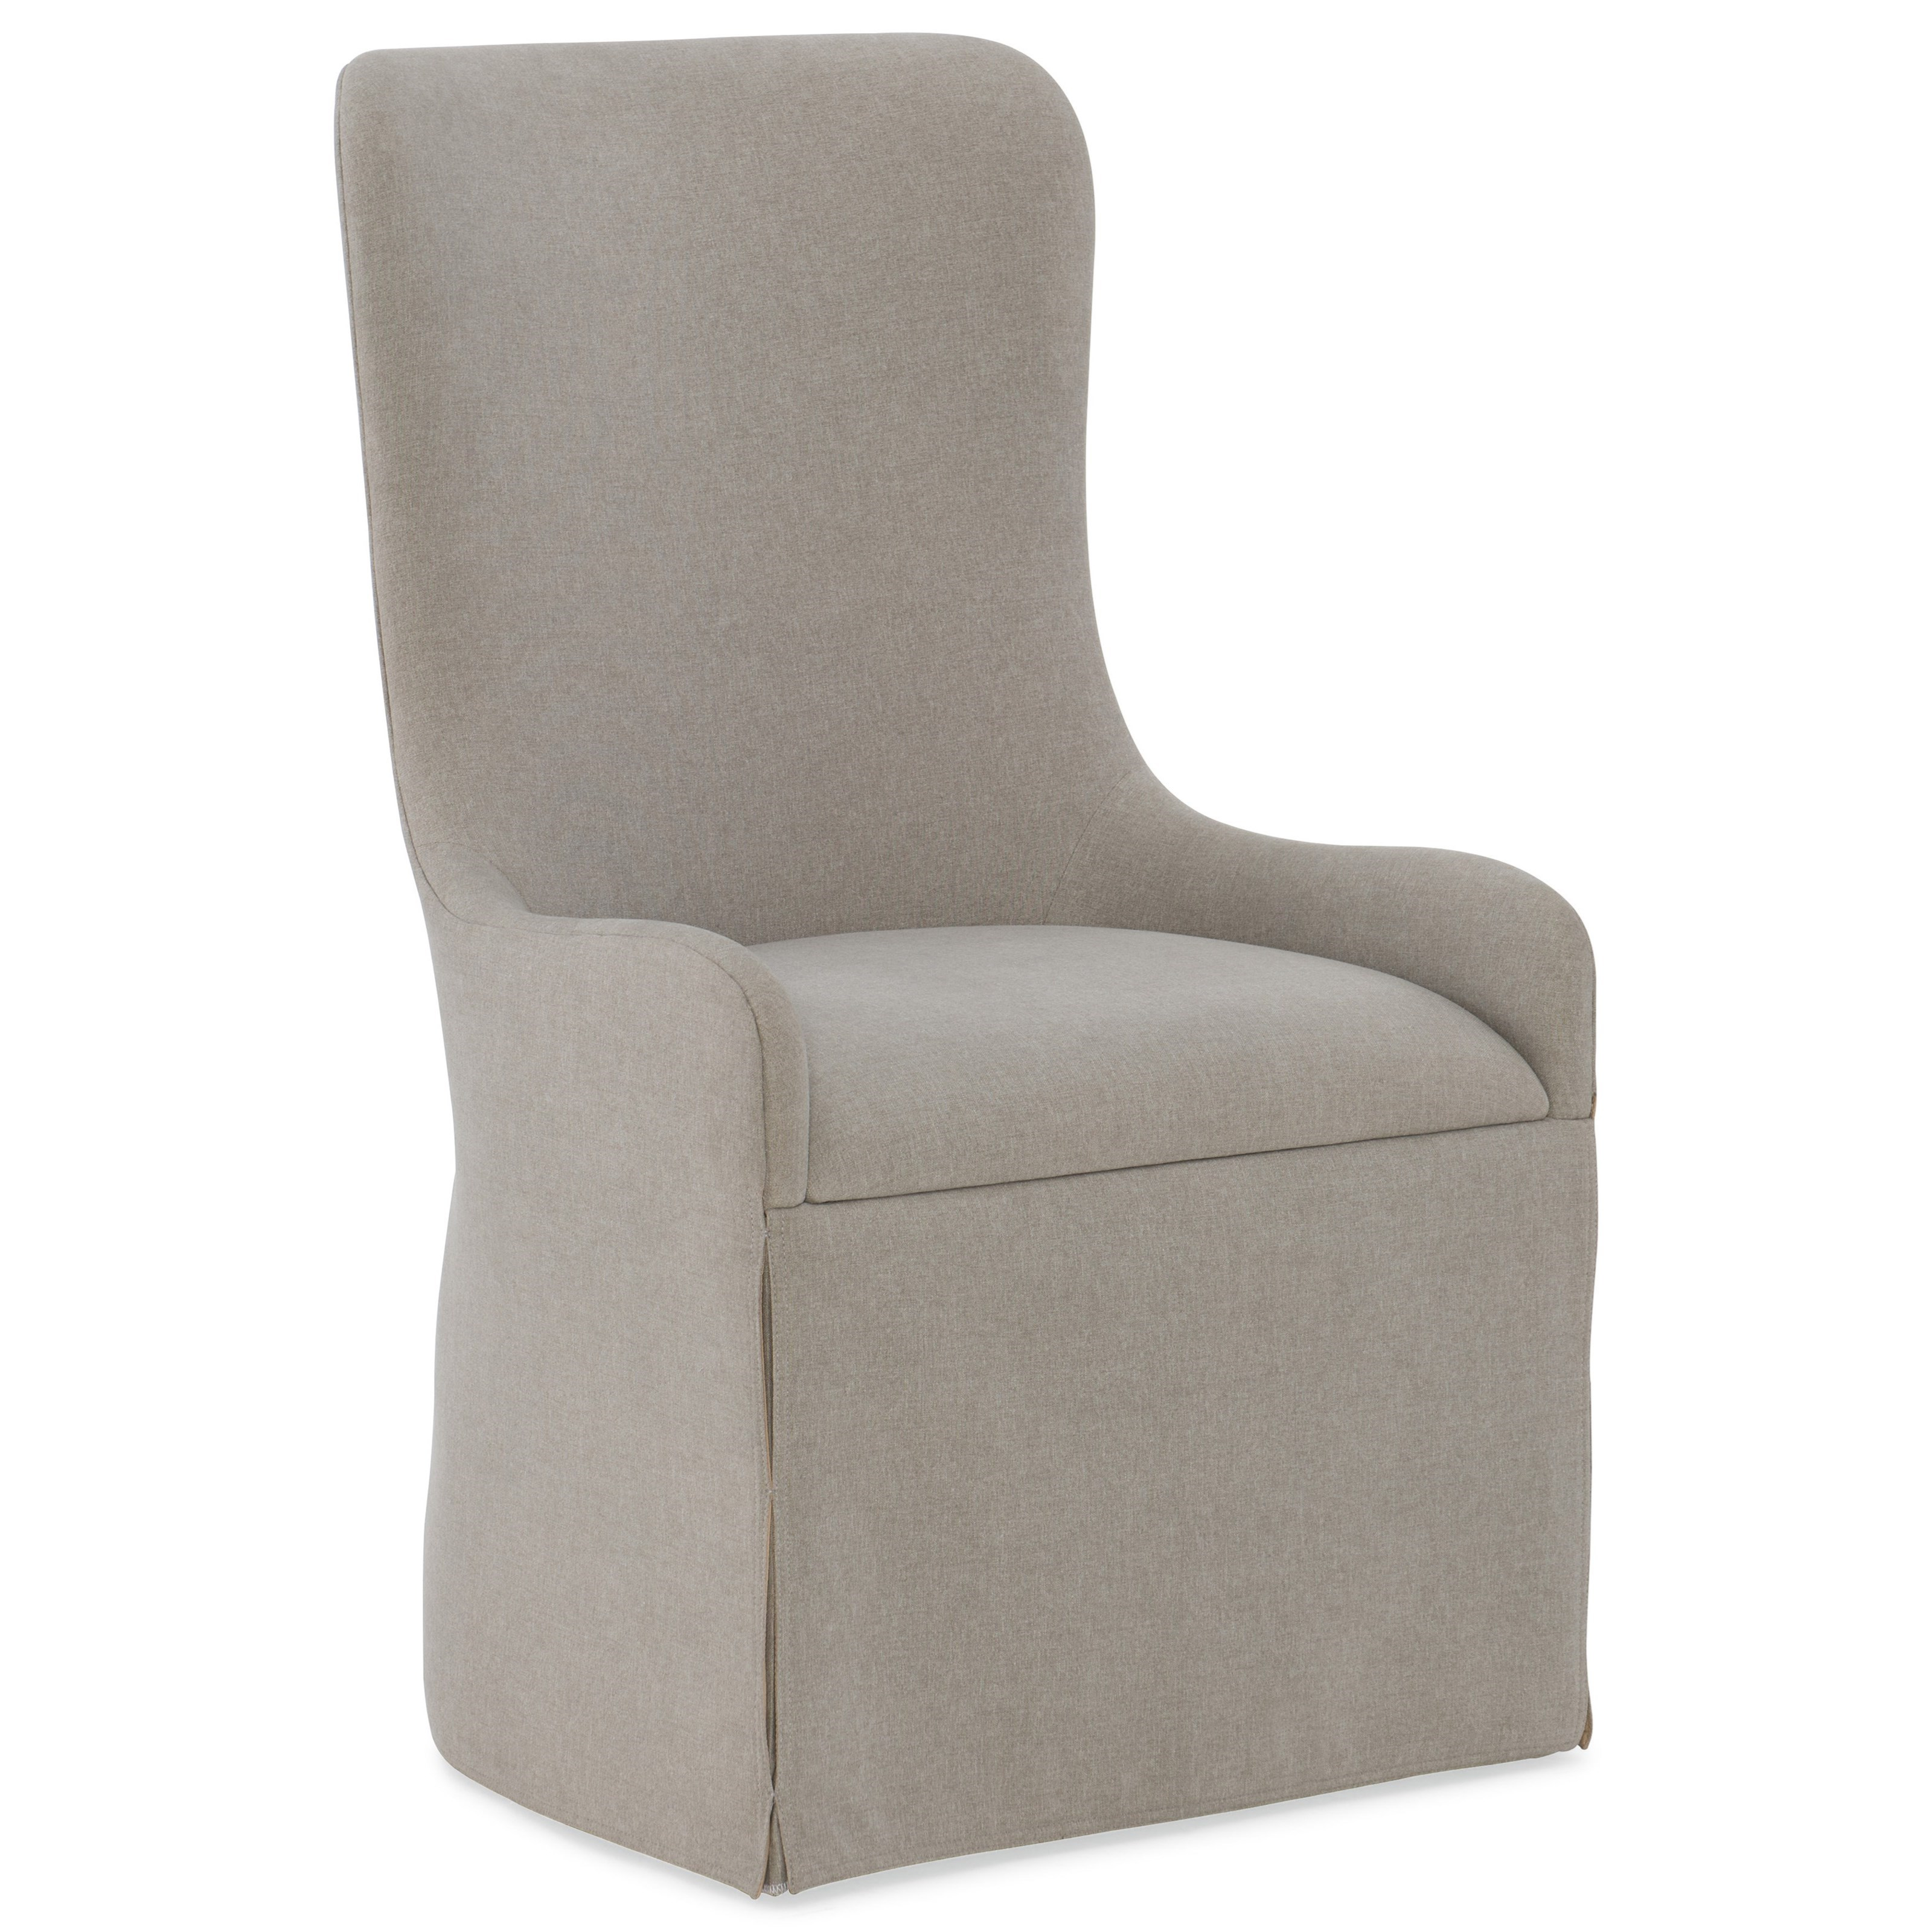 Miramar Aventura Gustave Upholstered Host Chair by Hooker Furniture at Stoney Creek Furniture